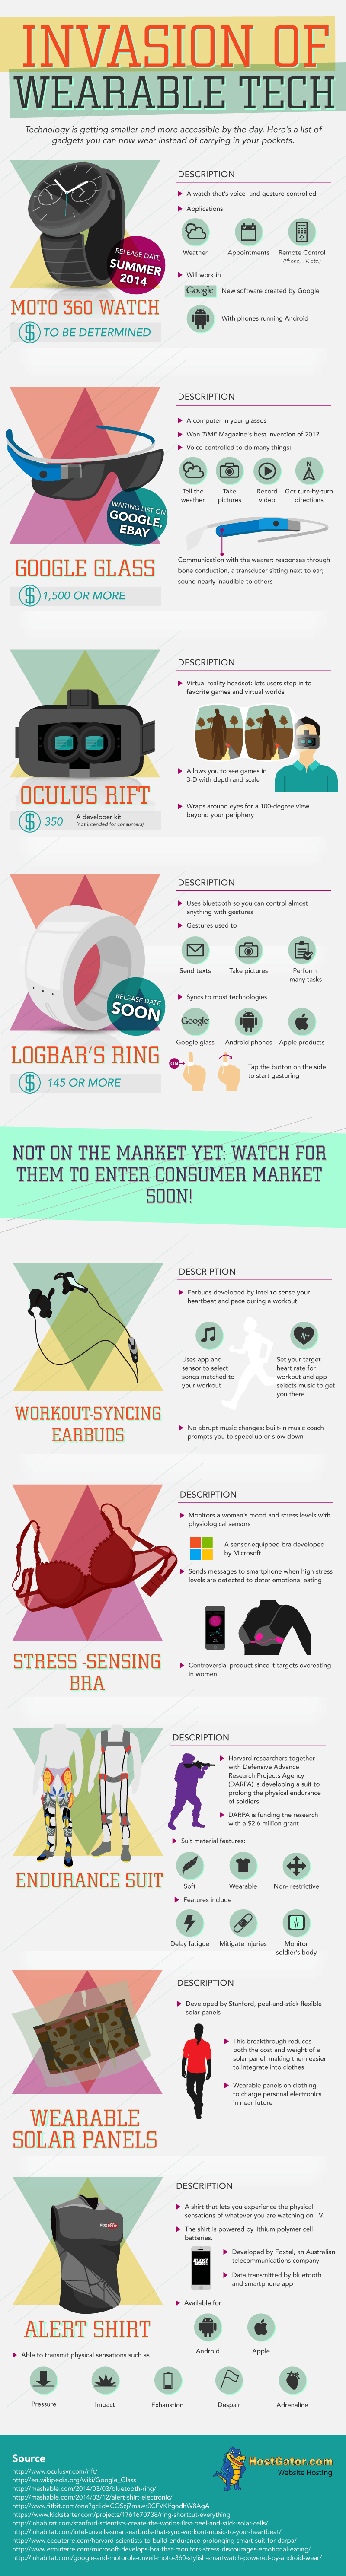 invasion-of-wearable-tech-infographic